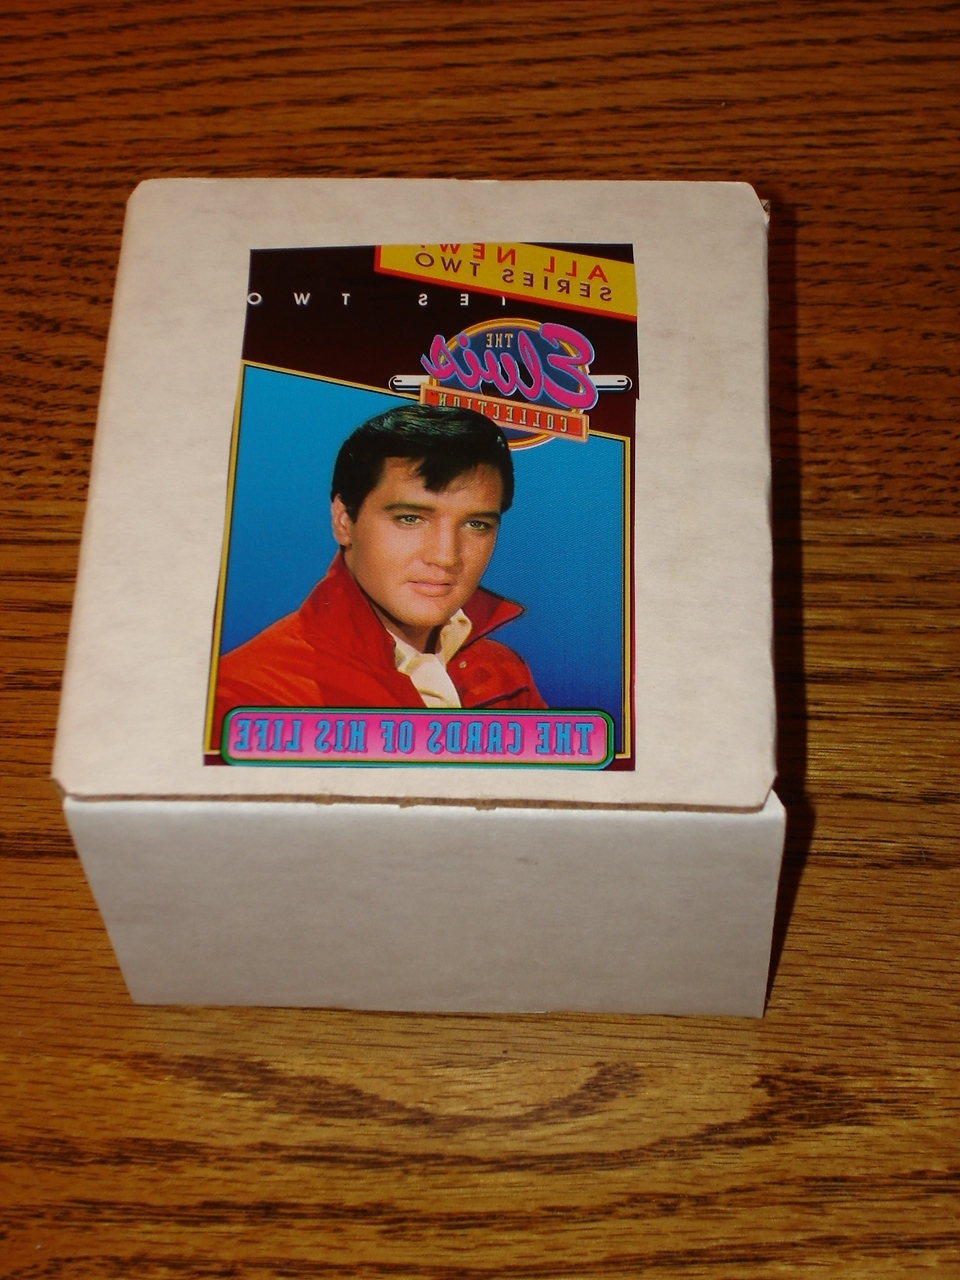 Primary image for ELVIS PRESLEY ELVIS COLLECTIONOF SERIES TWO CARDS